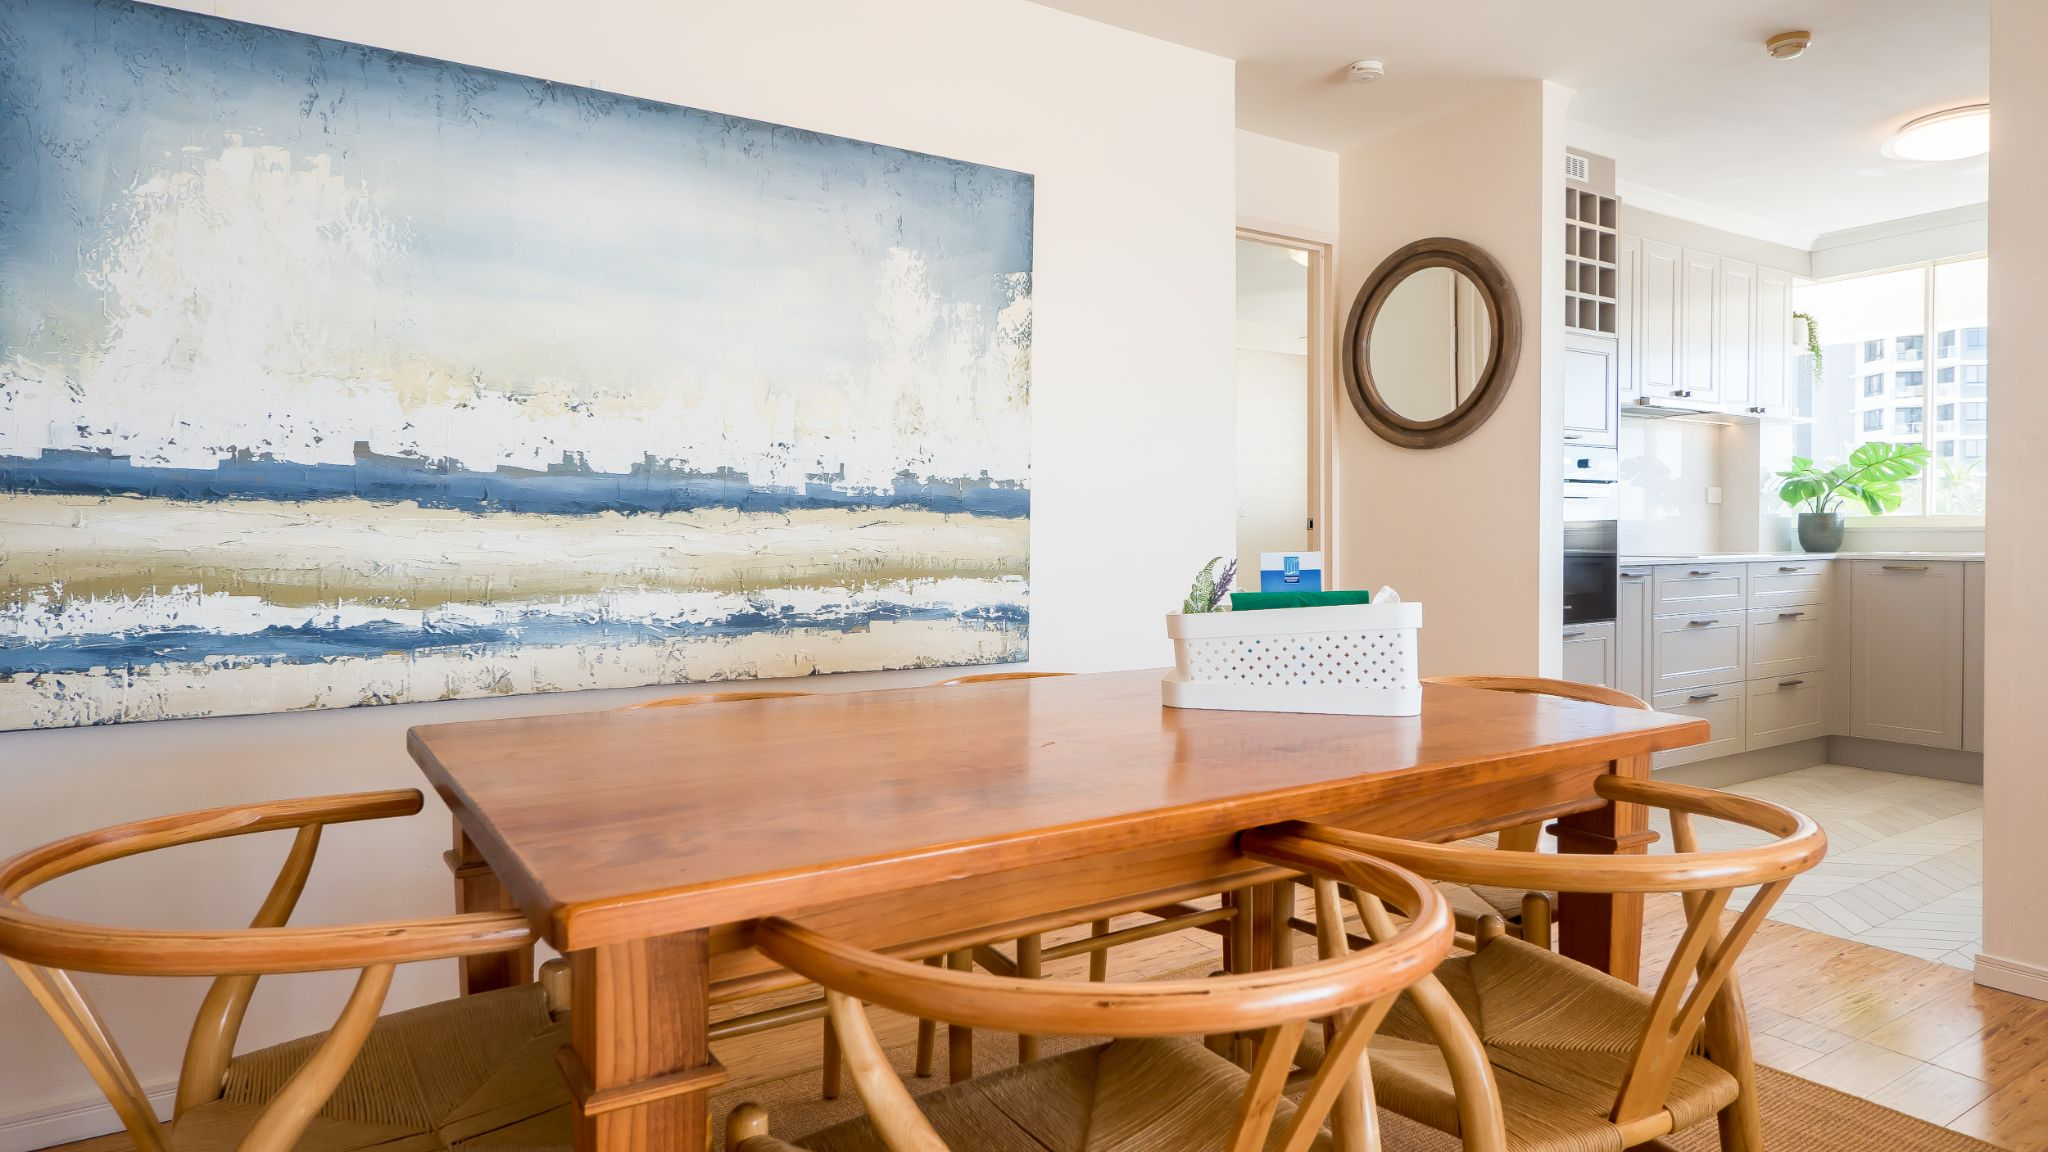 Viscount on the Beach kitchen and dining area